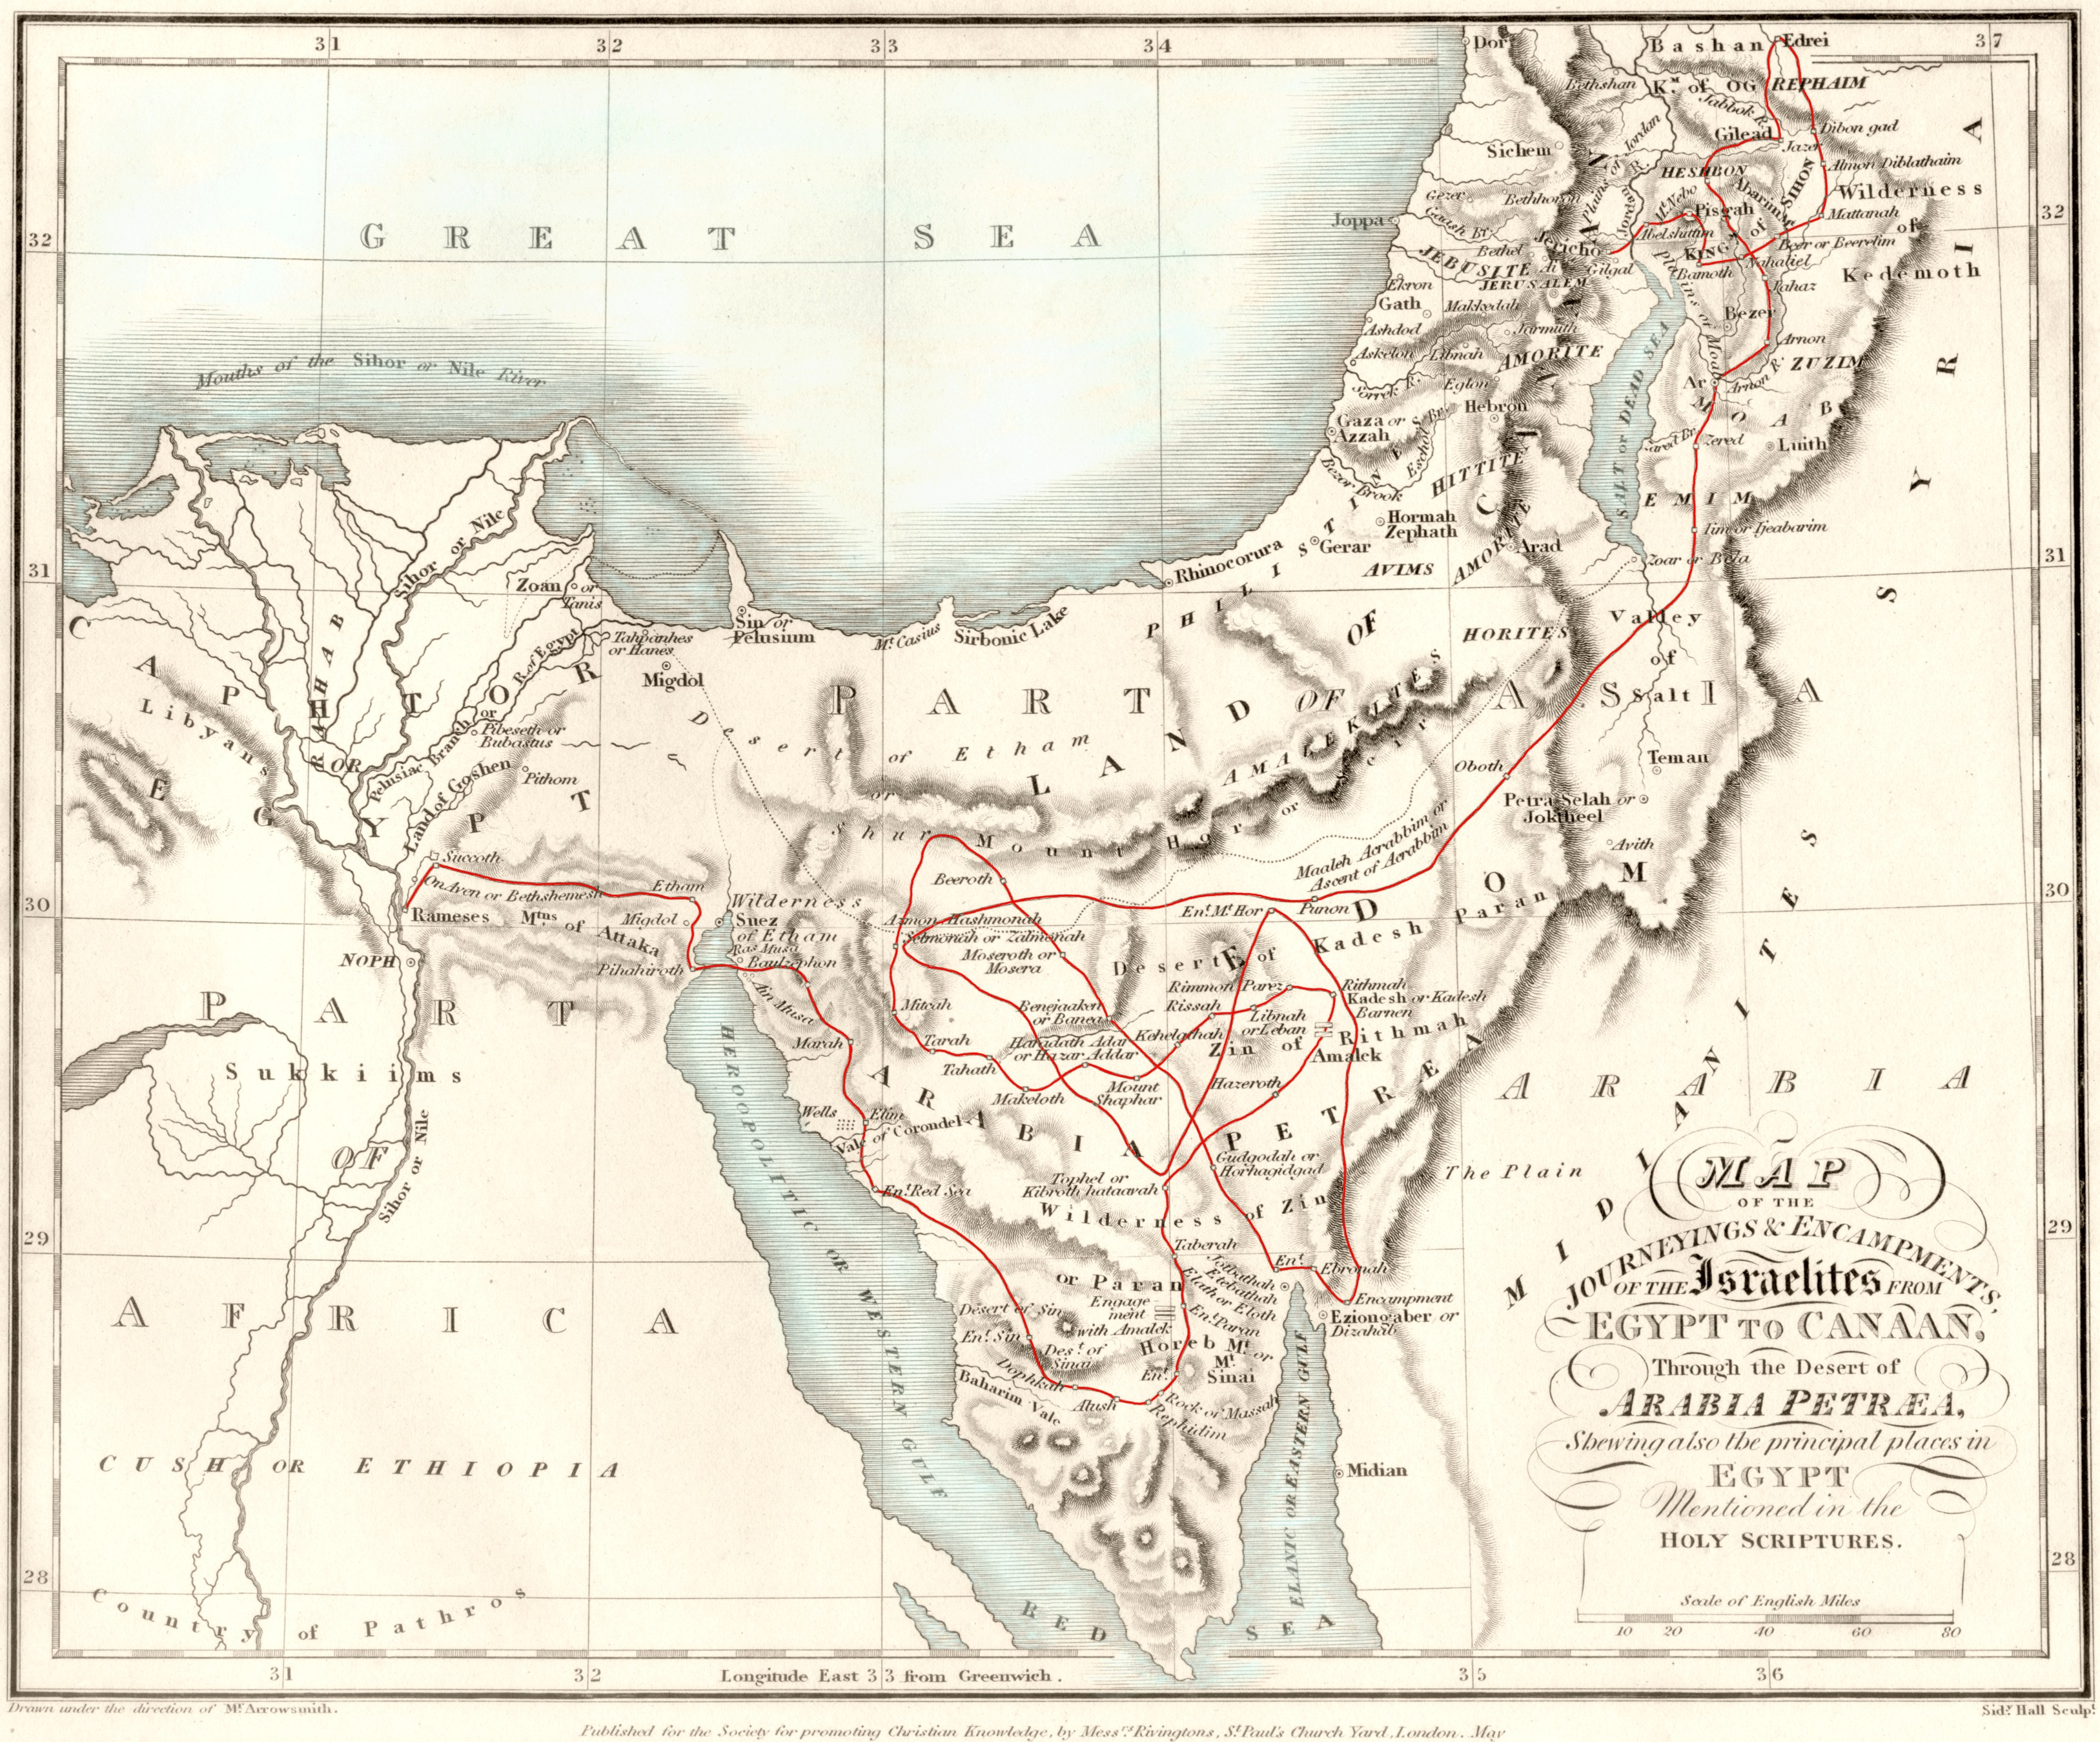 Early 19th-century map showing a traditional Exodus route.